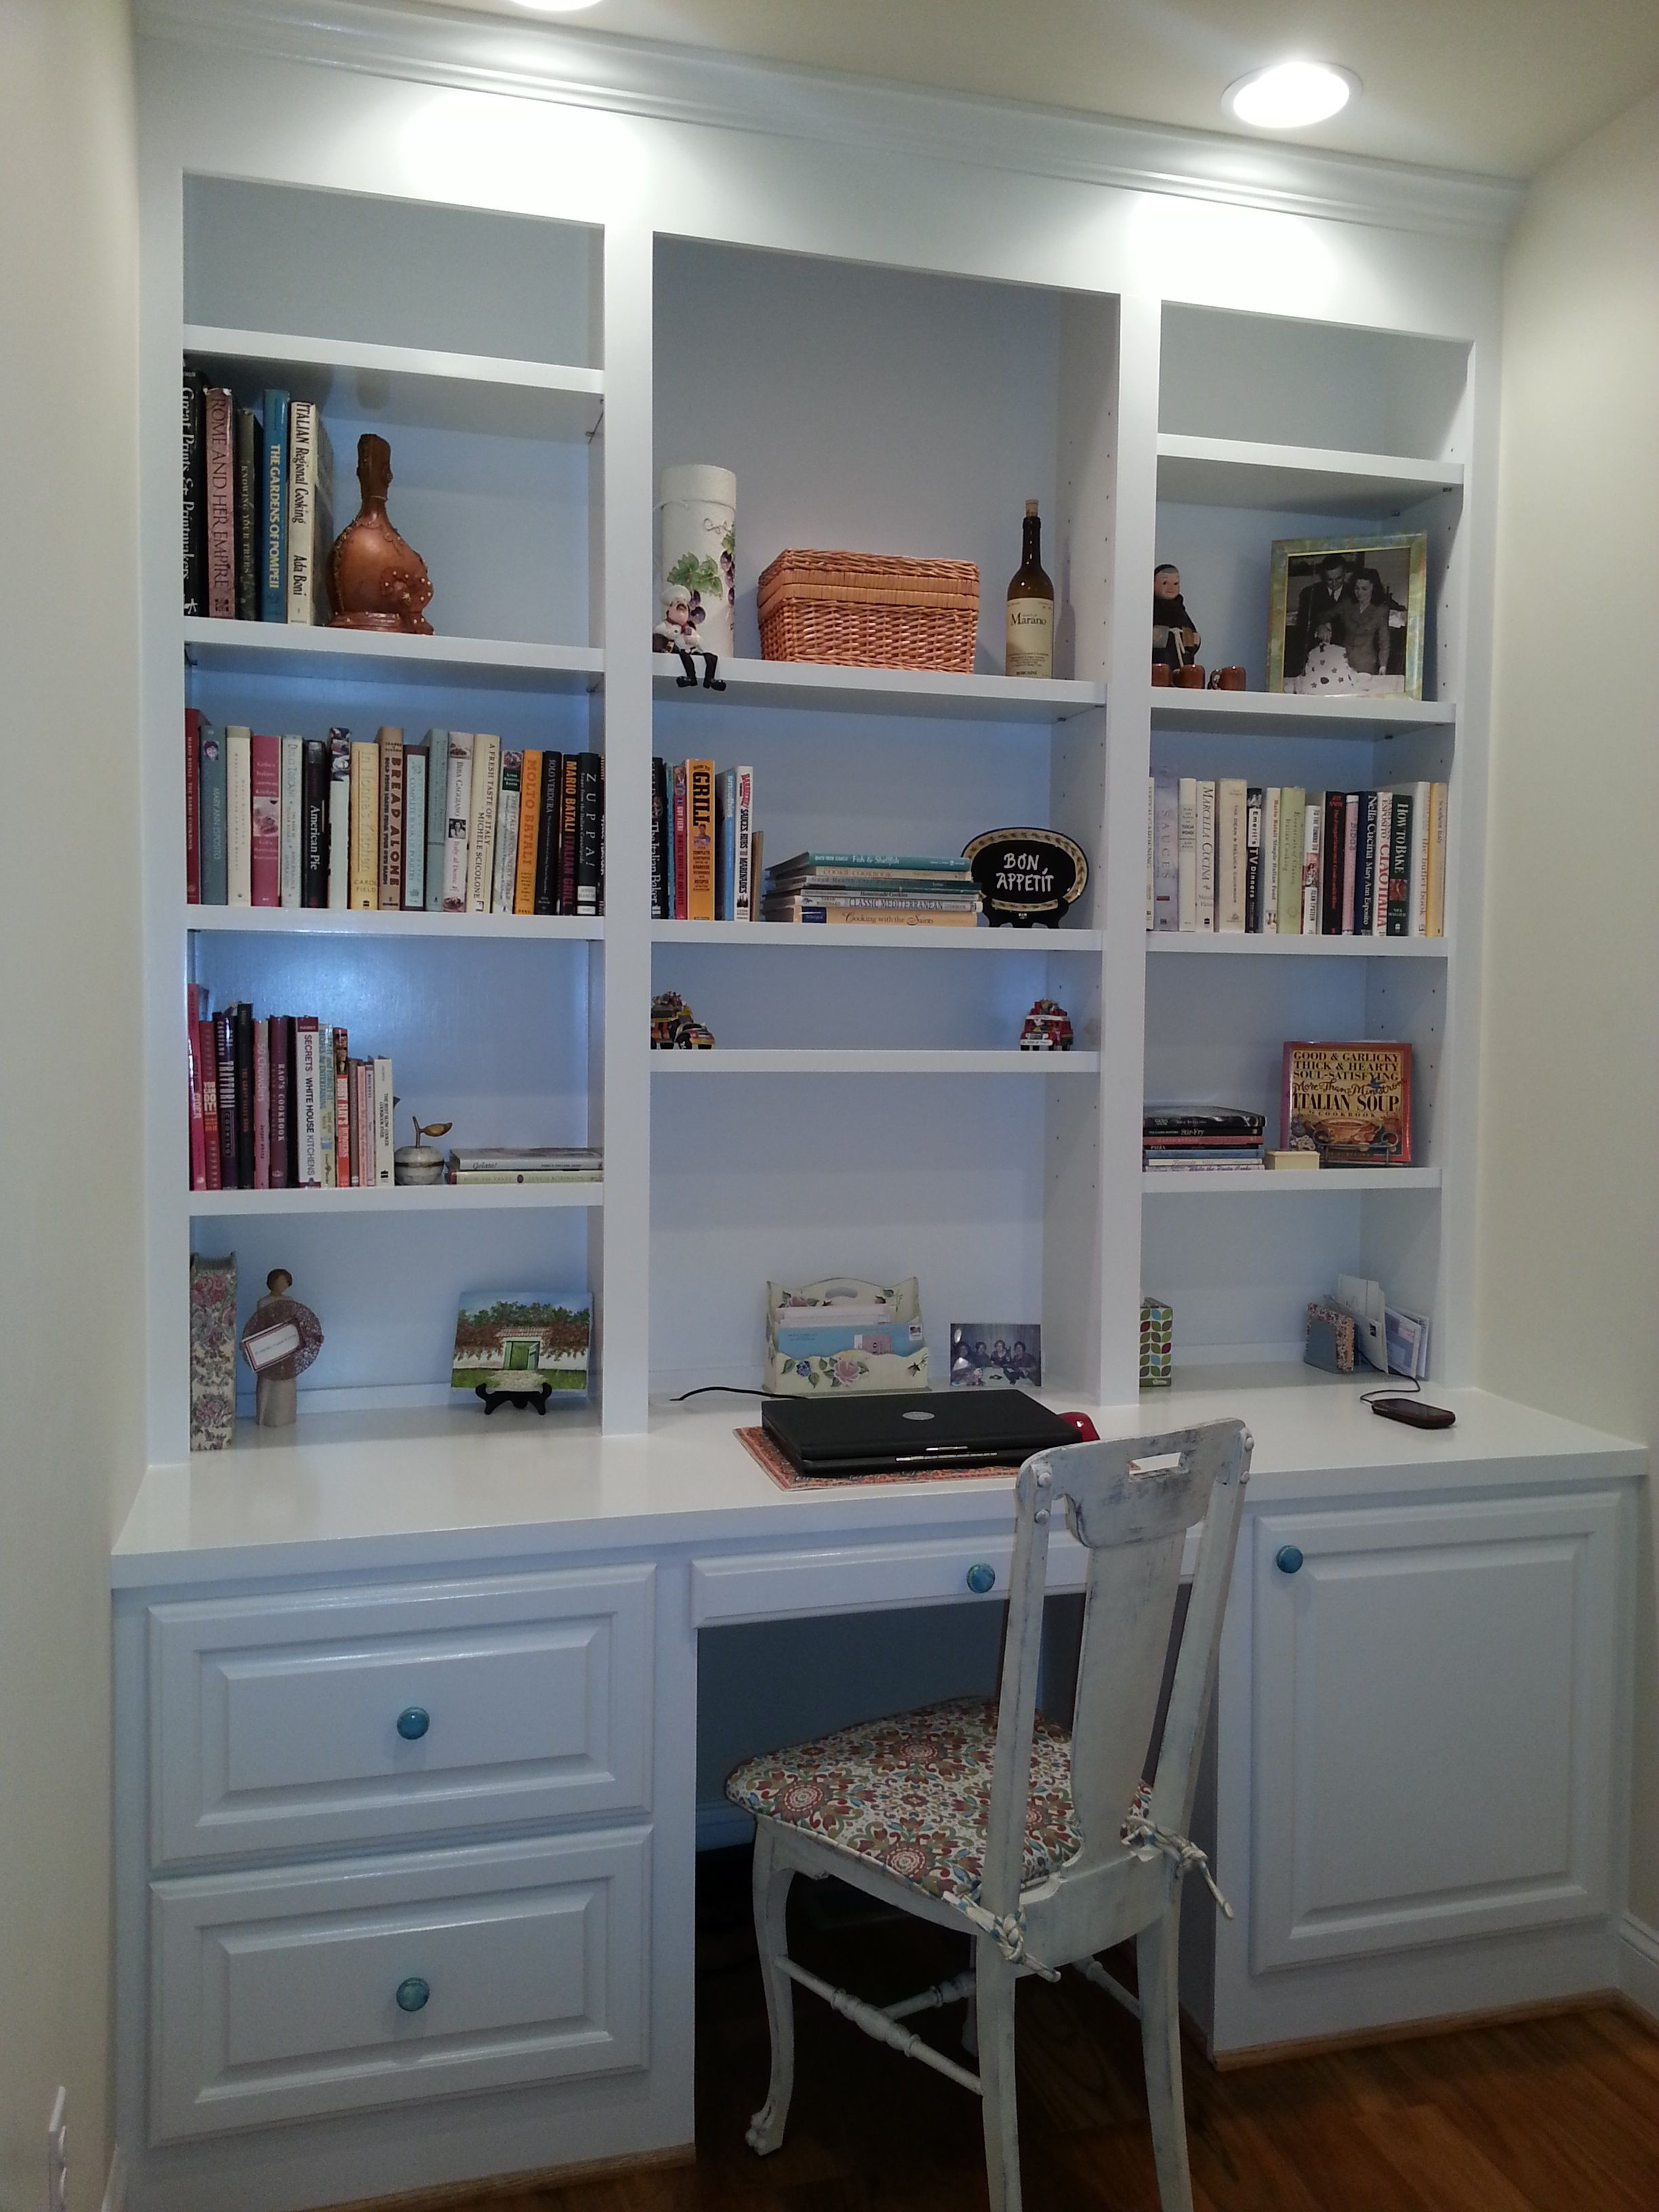 Pin By Marybeth Cerrone On Desks And Bookcases Bookcase Desk